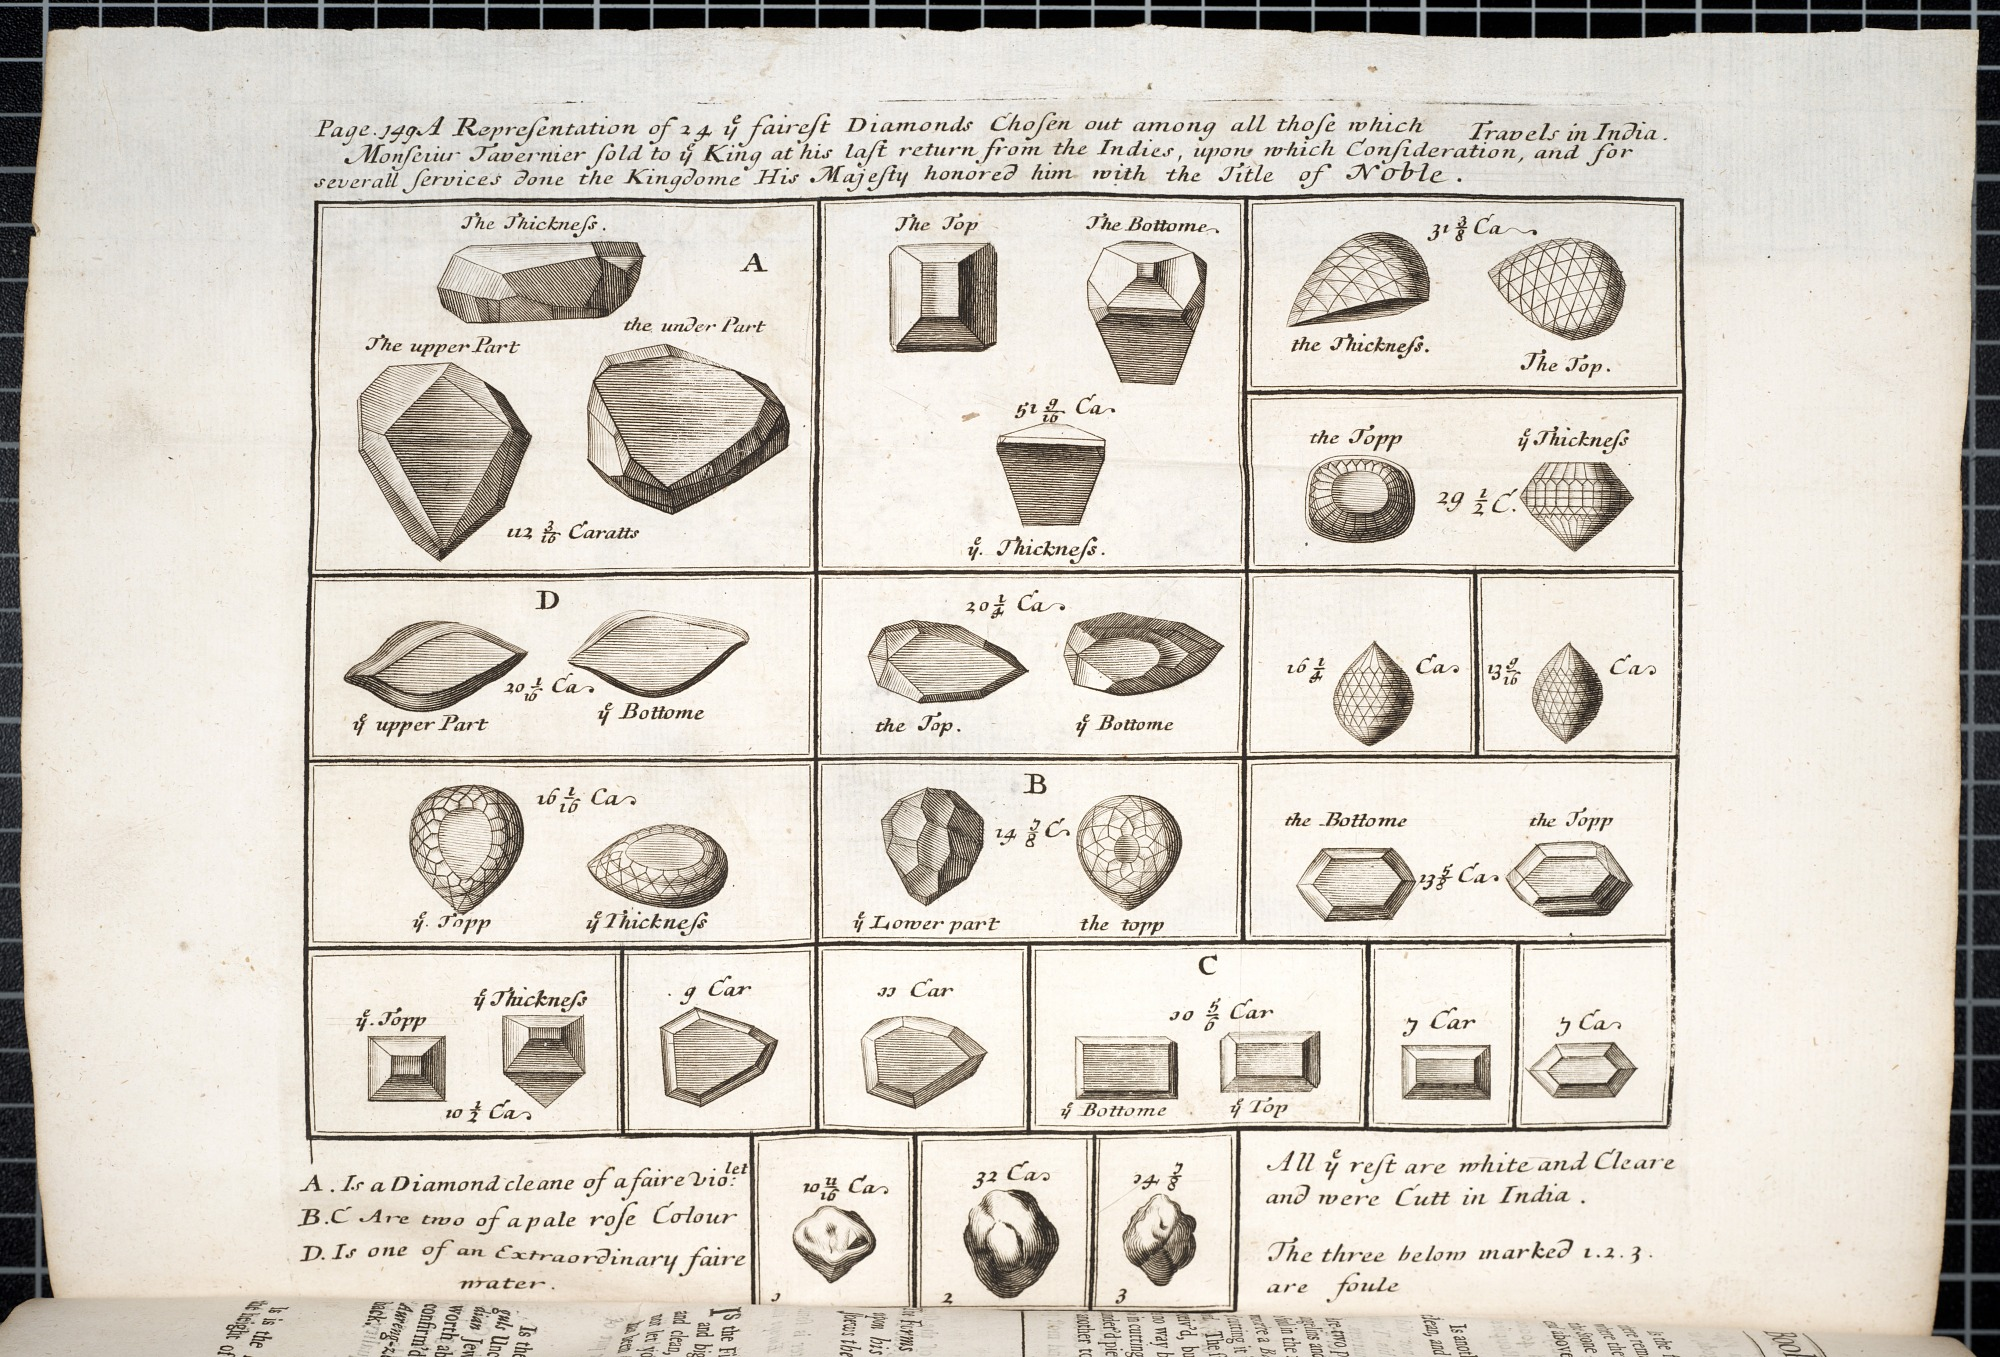 images for Drawings of diamonds from The six voyages of John Baptista Tavernier.